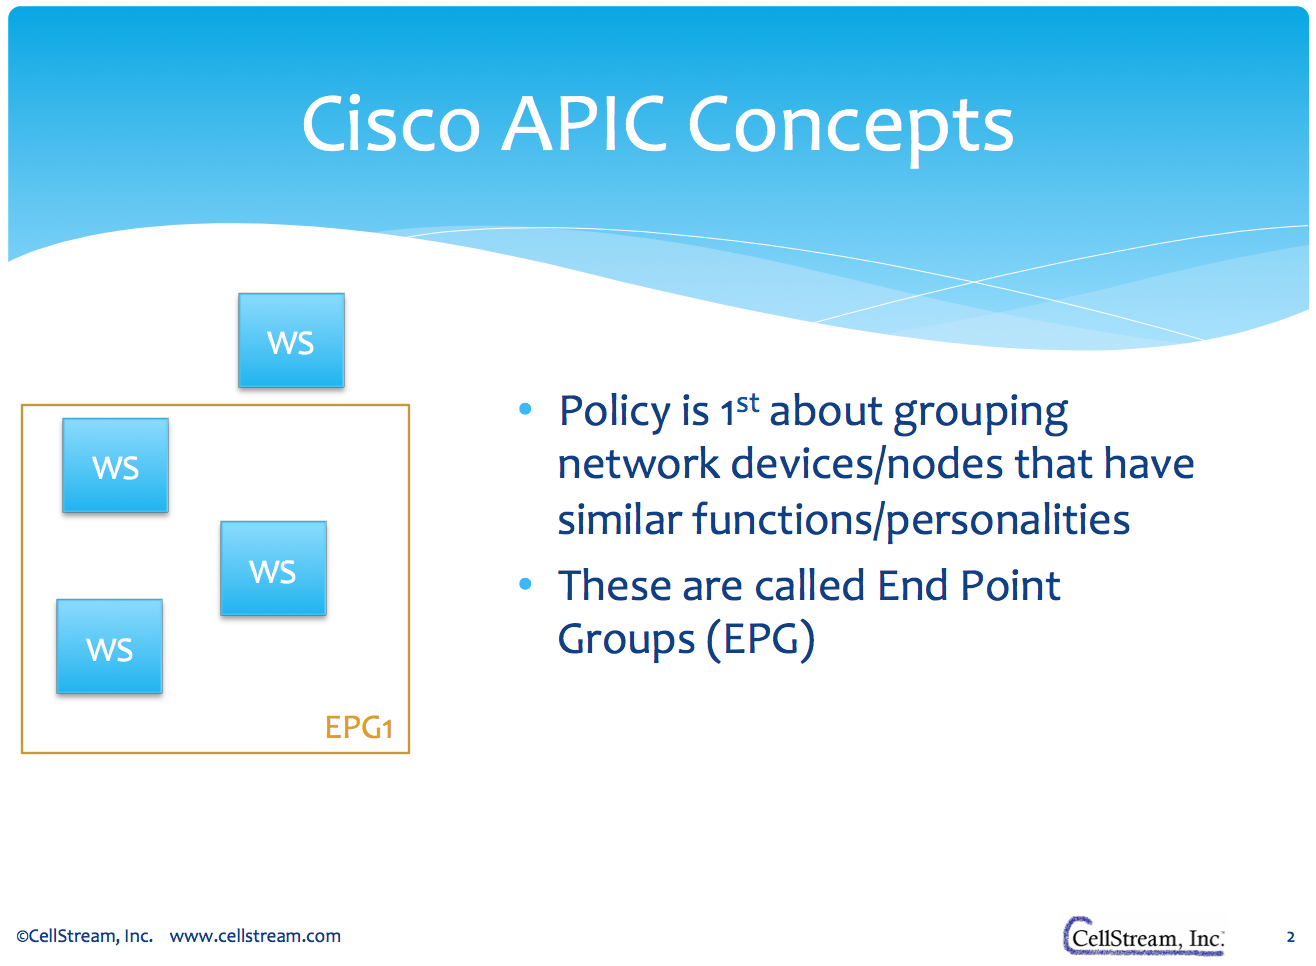 Cellstream how does cisco apic and aci fit in the sdn world screen shot 2014 12 05 at 110029 am 1betcityfo Images